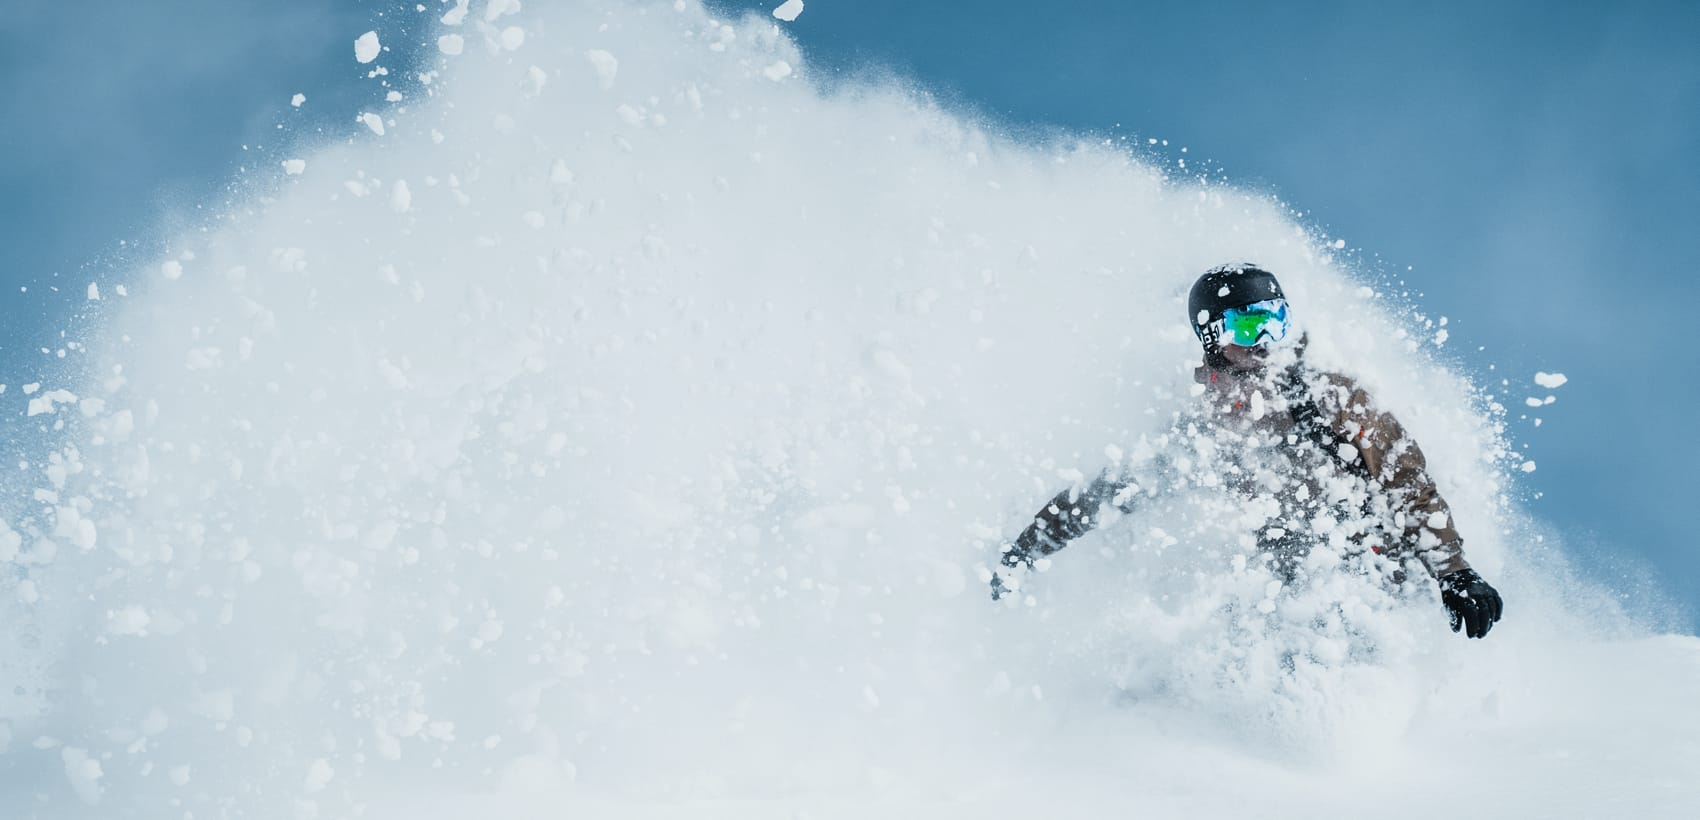 The Quebec Ski Area Association (ASSQ) has entrusted us with the design and development of its new eCommerce solution, Maneige.